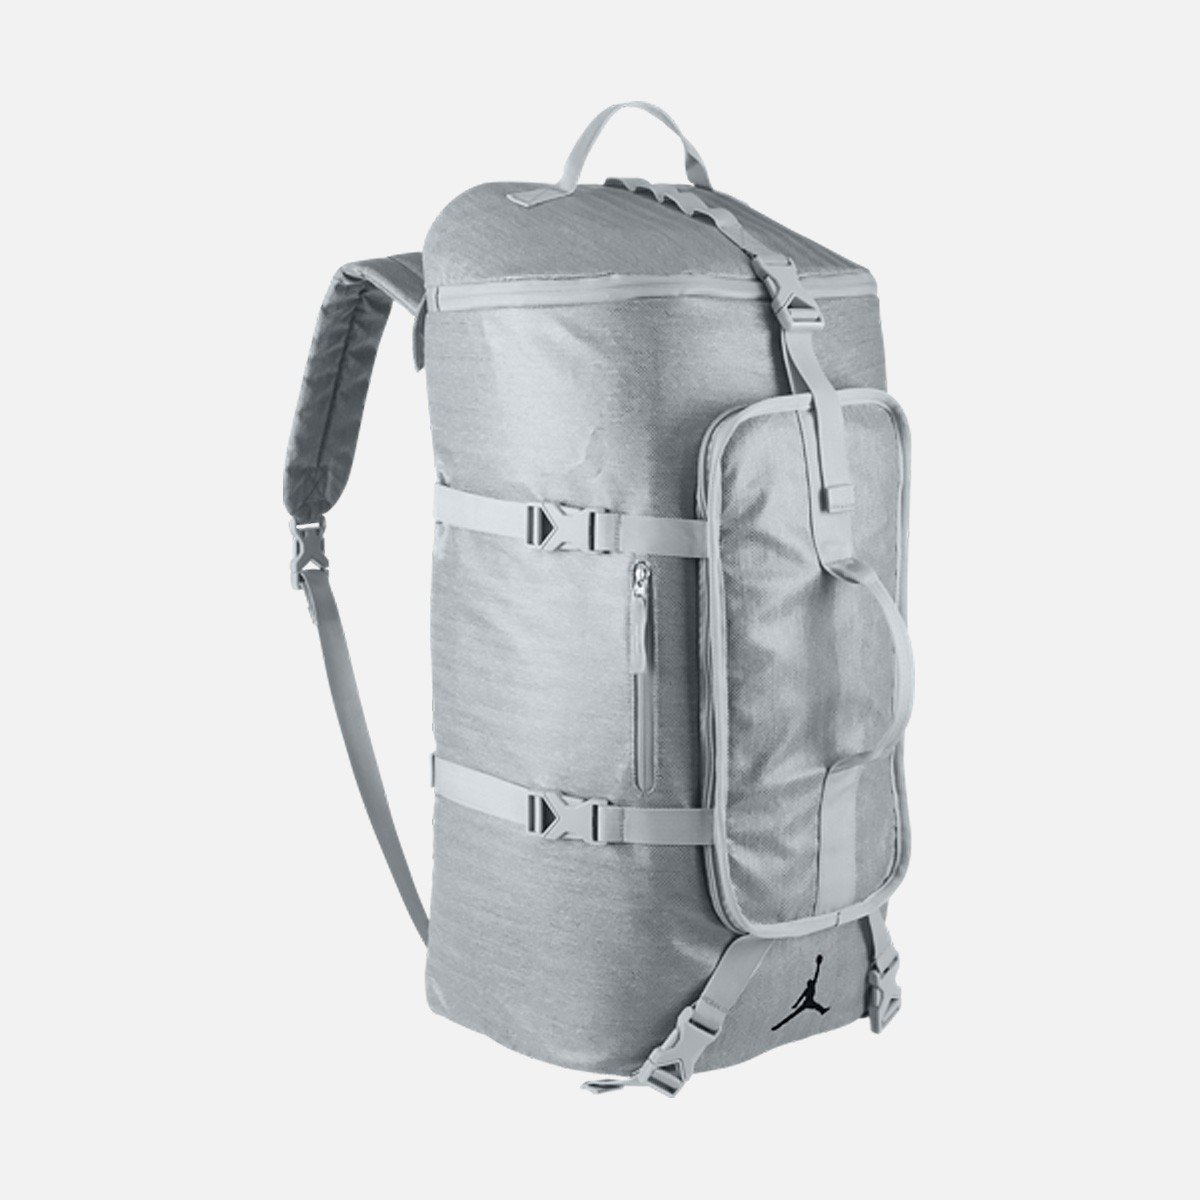 c8e40e4c195 Grab this Grey Jordan Duffle Bag for 35% off + free shipping with code